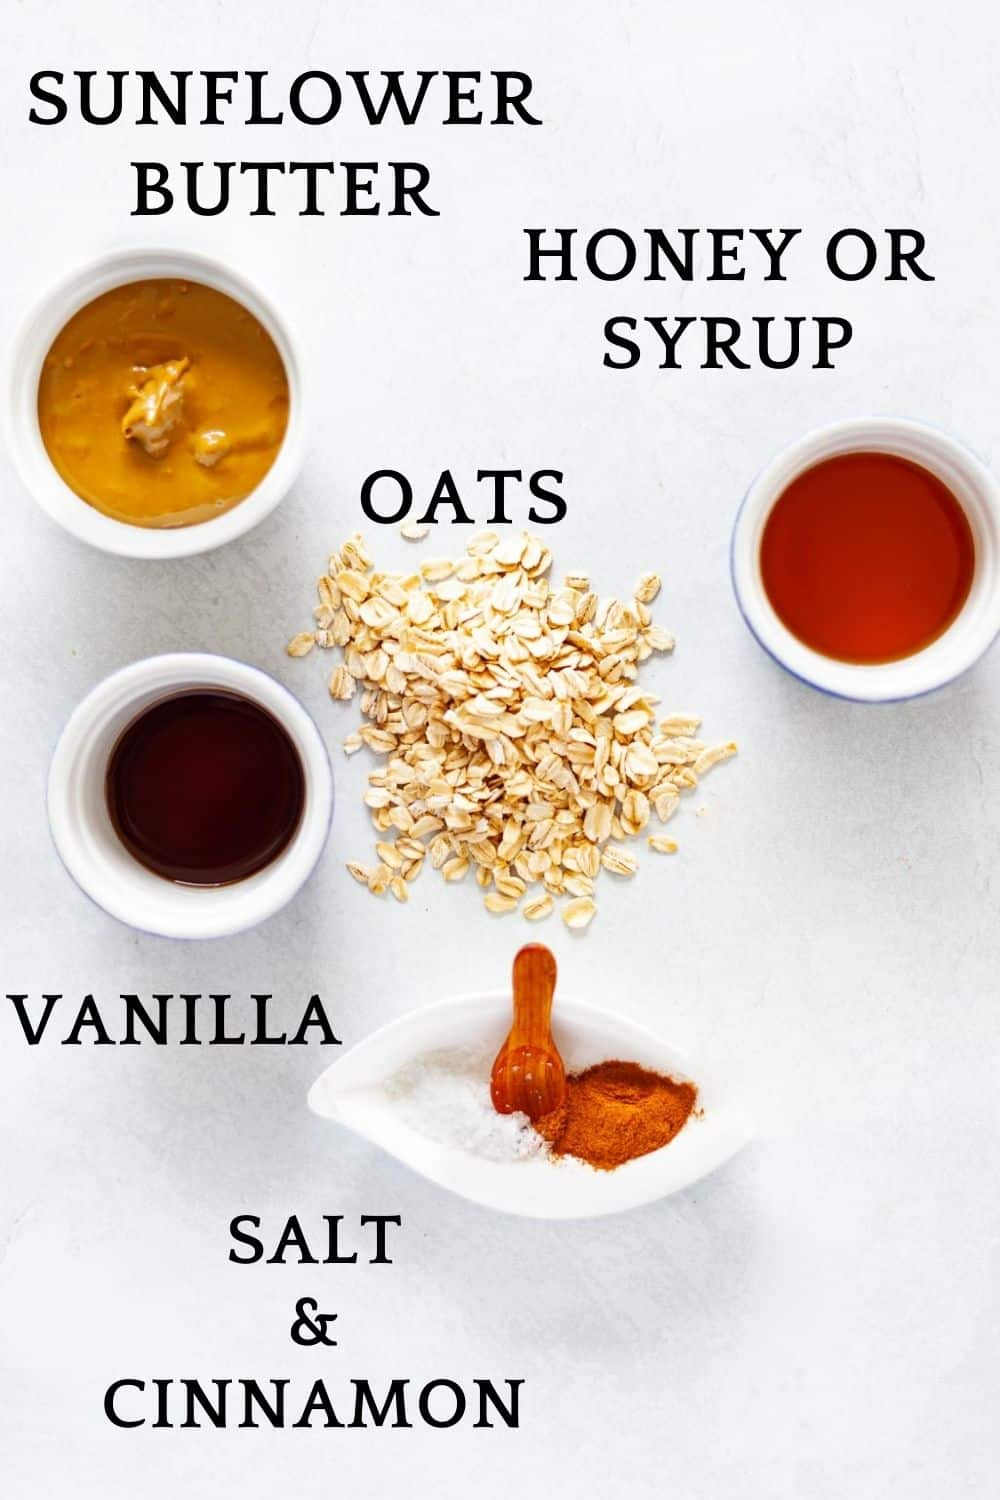 labeled ingredients for granola bars: sunflower butter, oats, honey or syrup, vanilla, salt and cinnamon